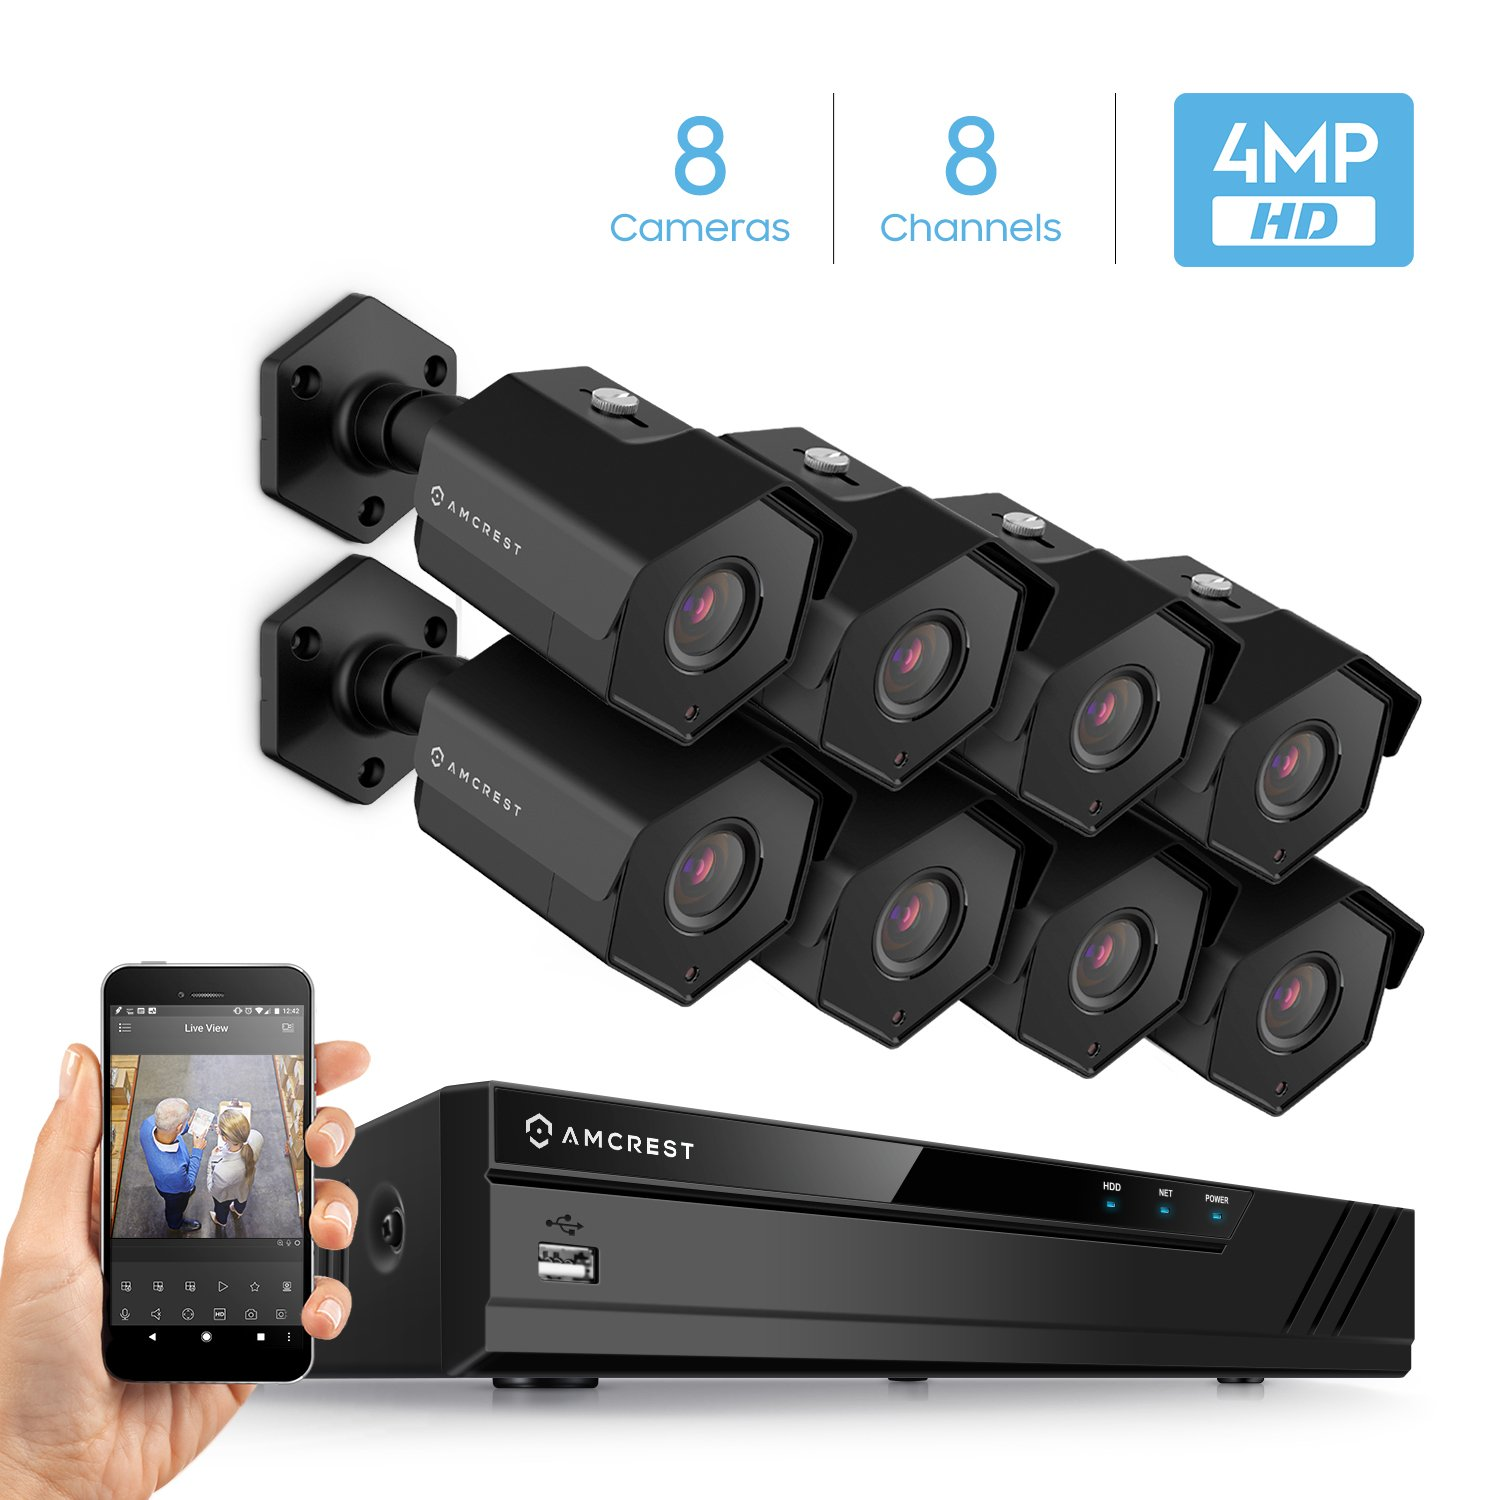 Amcrest 4MP Security Camera System, w 4K 8CH PoE NVR, 8 x 4-Megapixel 3.6mm Wide Angle Lens Weatherproof Metal Bullet POE IP Cameras, NV4108E-HS-IP4M-1026EB8 Black